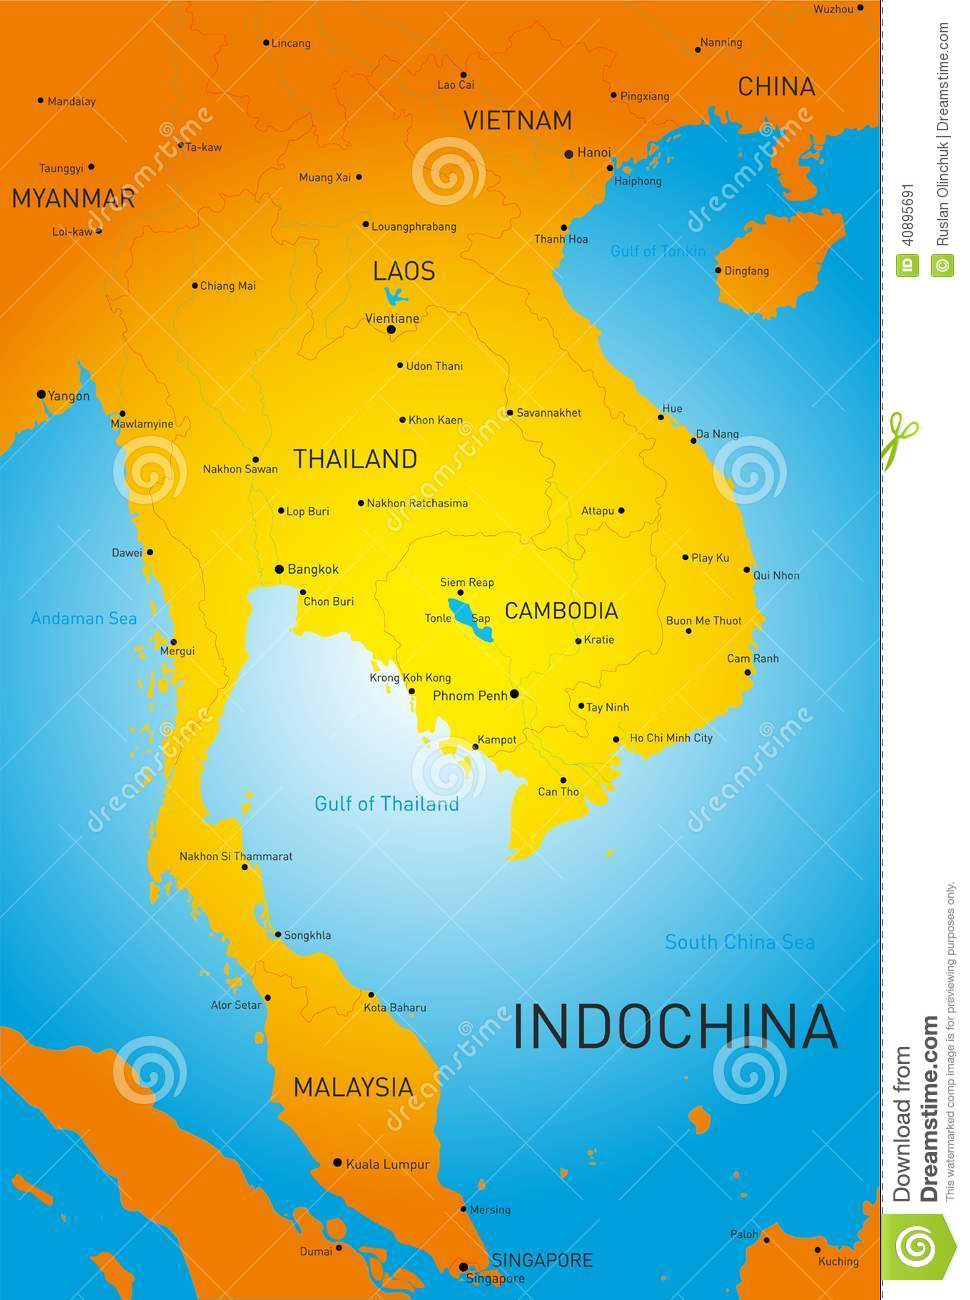 Indochina Stock Vector - Image: 40895691